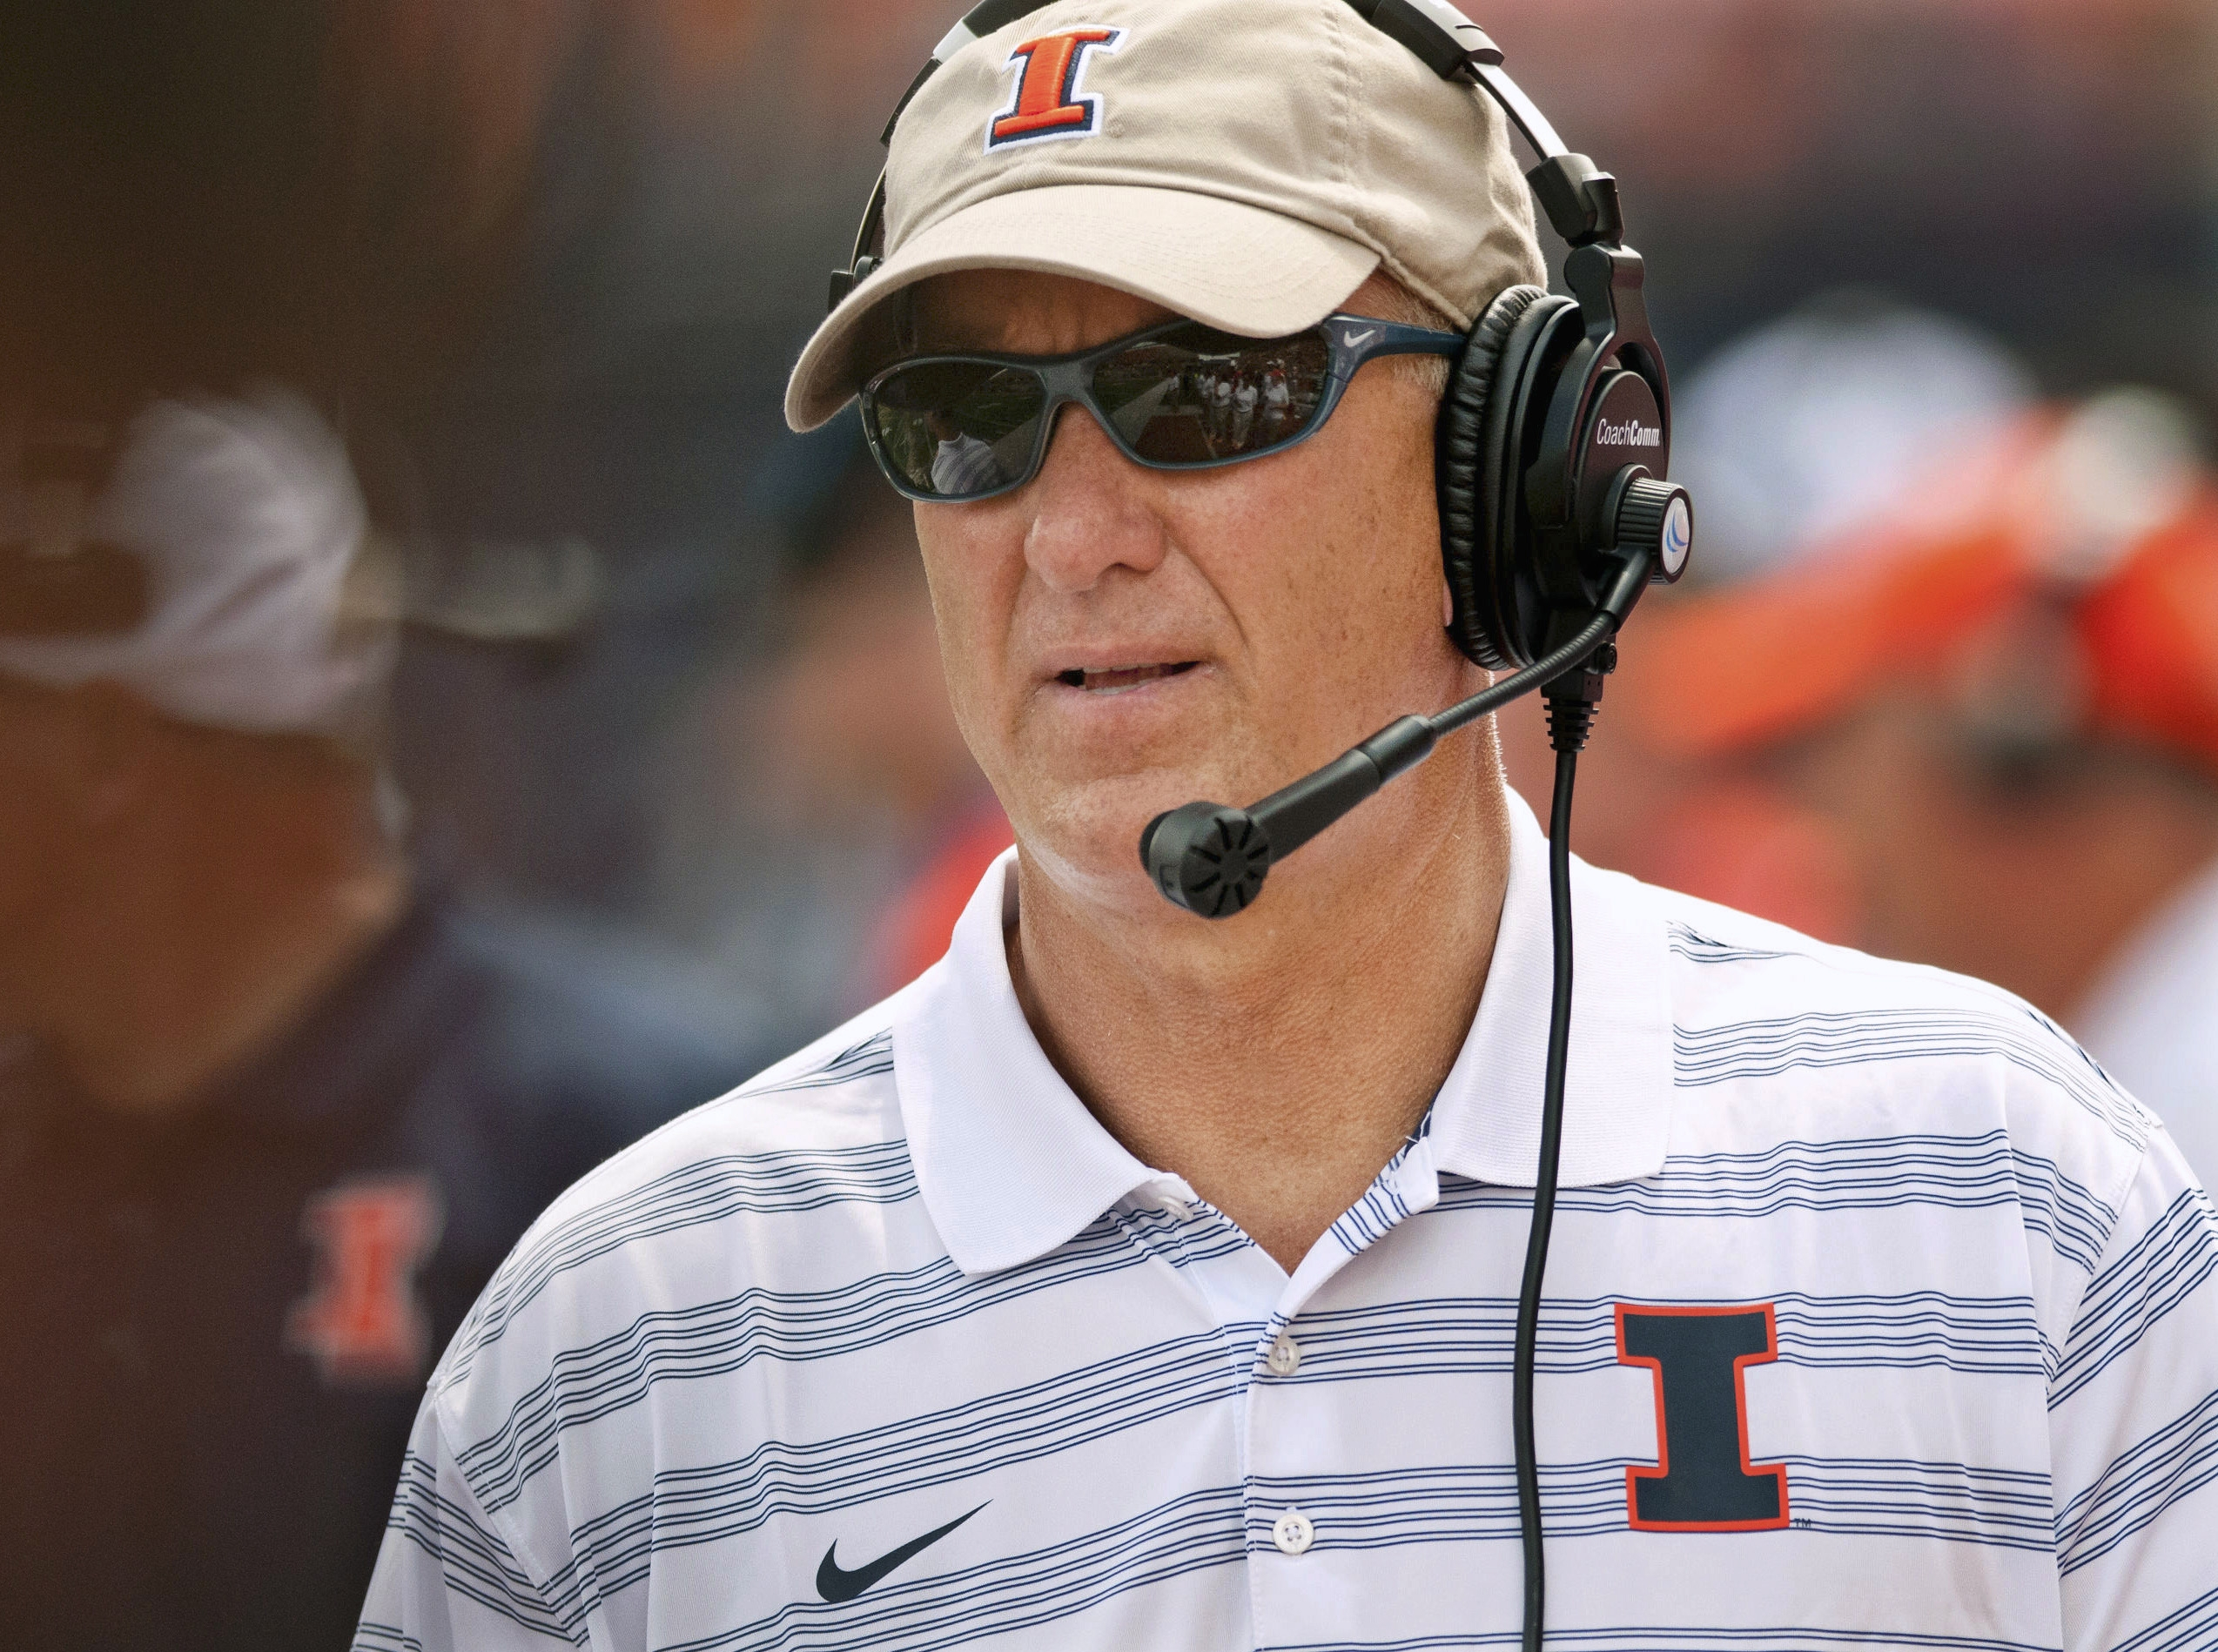 FILE - In this Aug. 30, 2014, file photo, Illinois offensive coordinator Bill Cubit watches from the sideline during an NCAA college football game against Youngstown State in Champaign, Ill. Cubit has been named interim coach as Illinois abruptly fired he